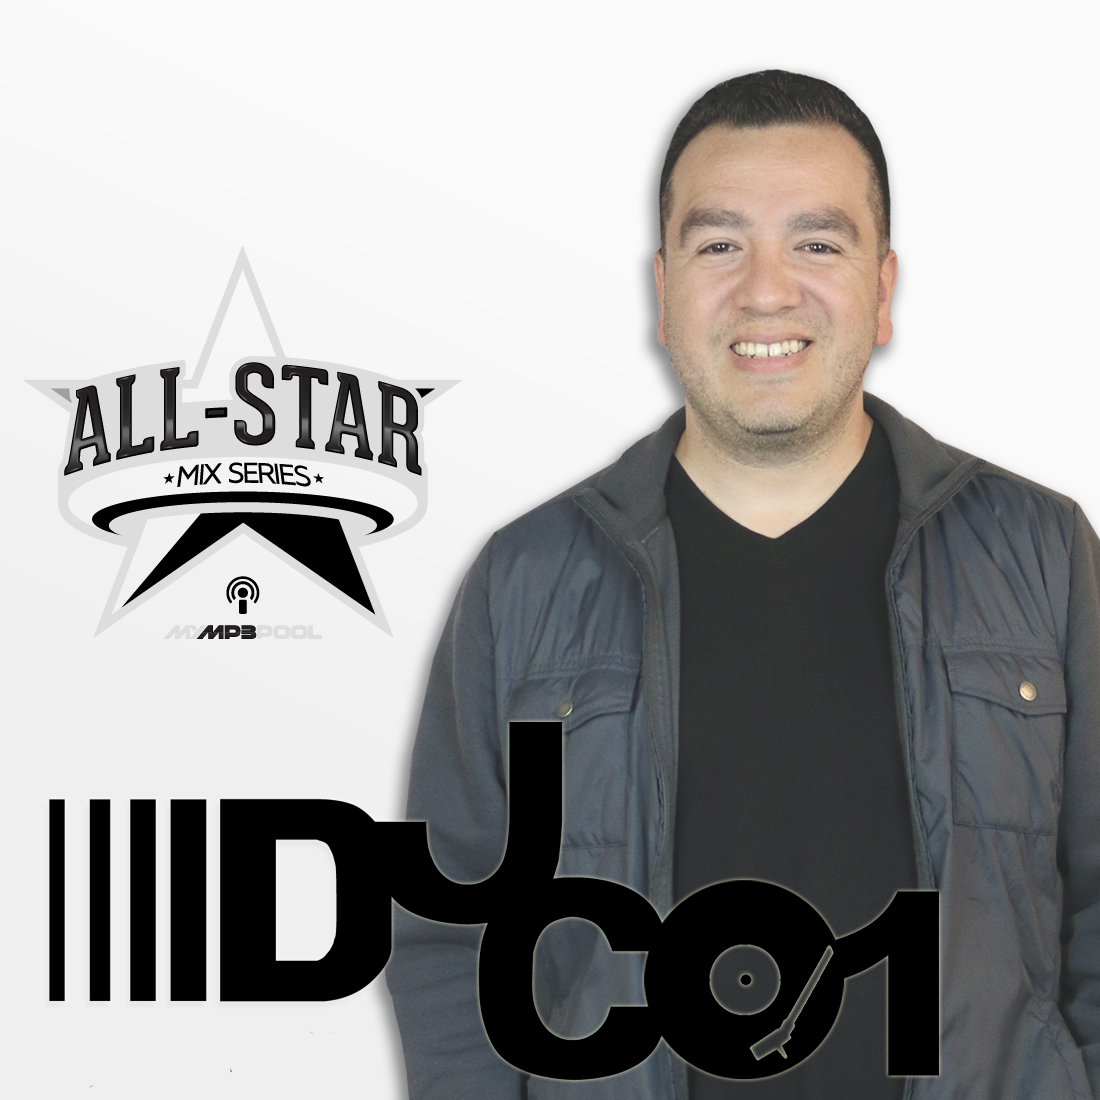 All star mix - CO 1 image artwork